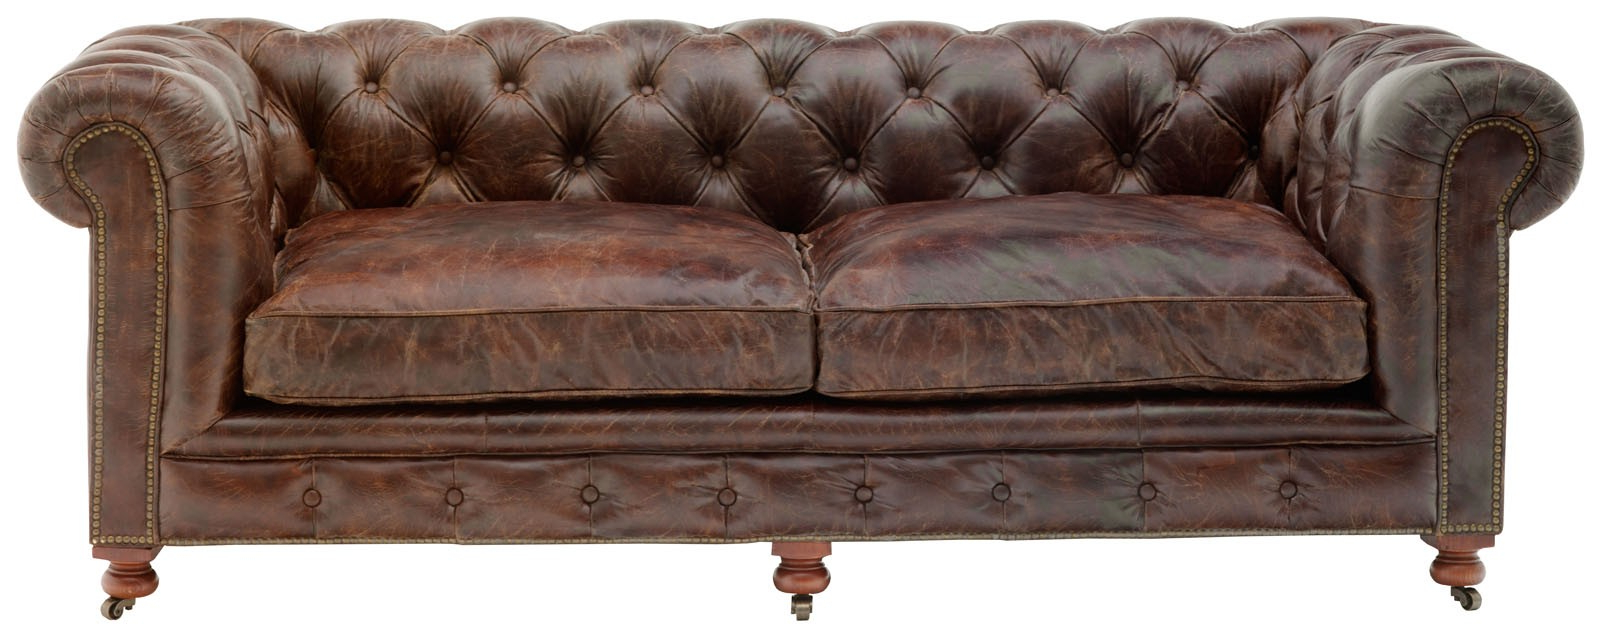 Most Recent Great Leather Sofa Chair 71 In Sofas And Couches Ideas With Leather Inside Andrew Leather Sofa Chairs (View 1 of 20)